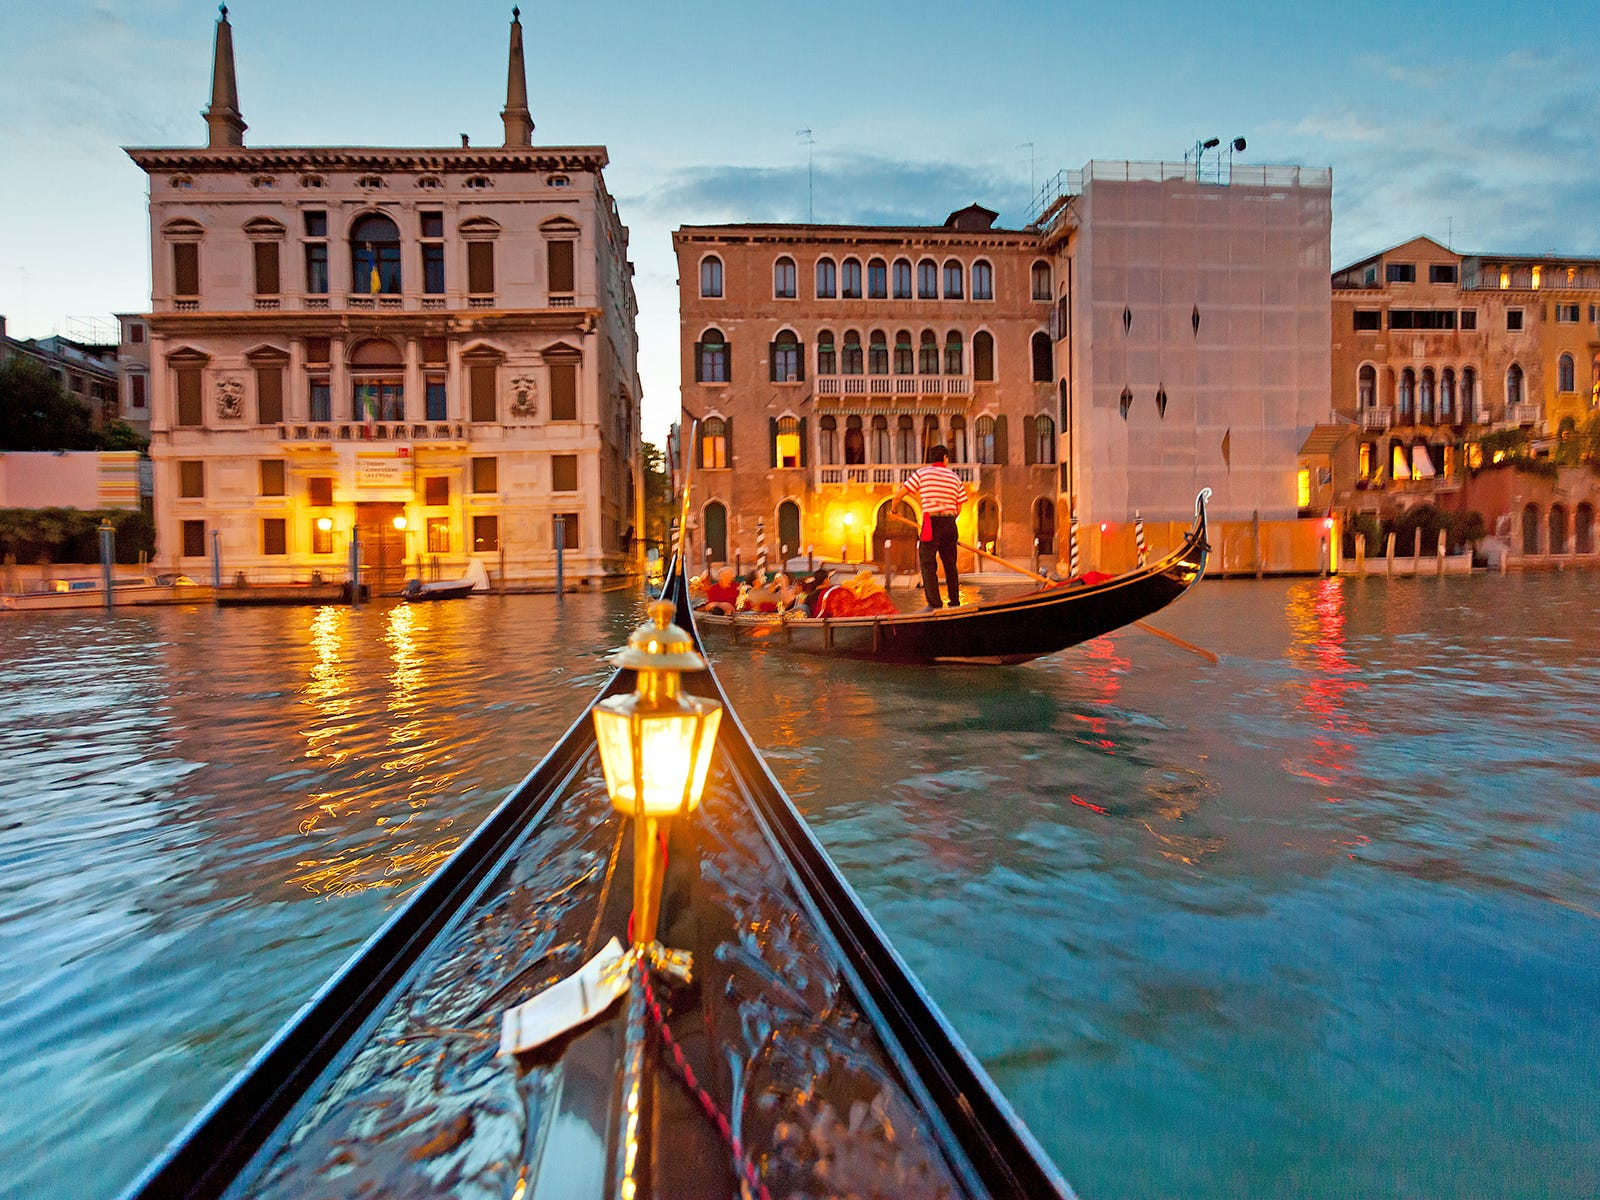 Though expensive, riding a gondola at night is one of the great experiences in Europe.